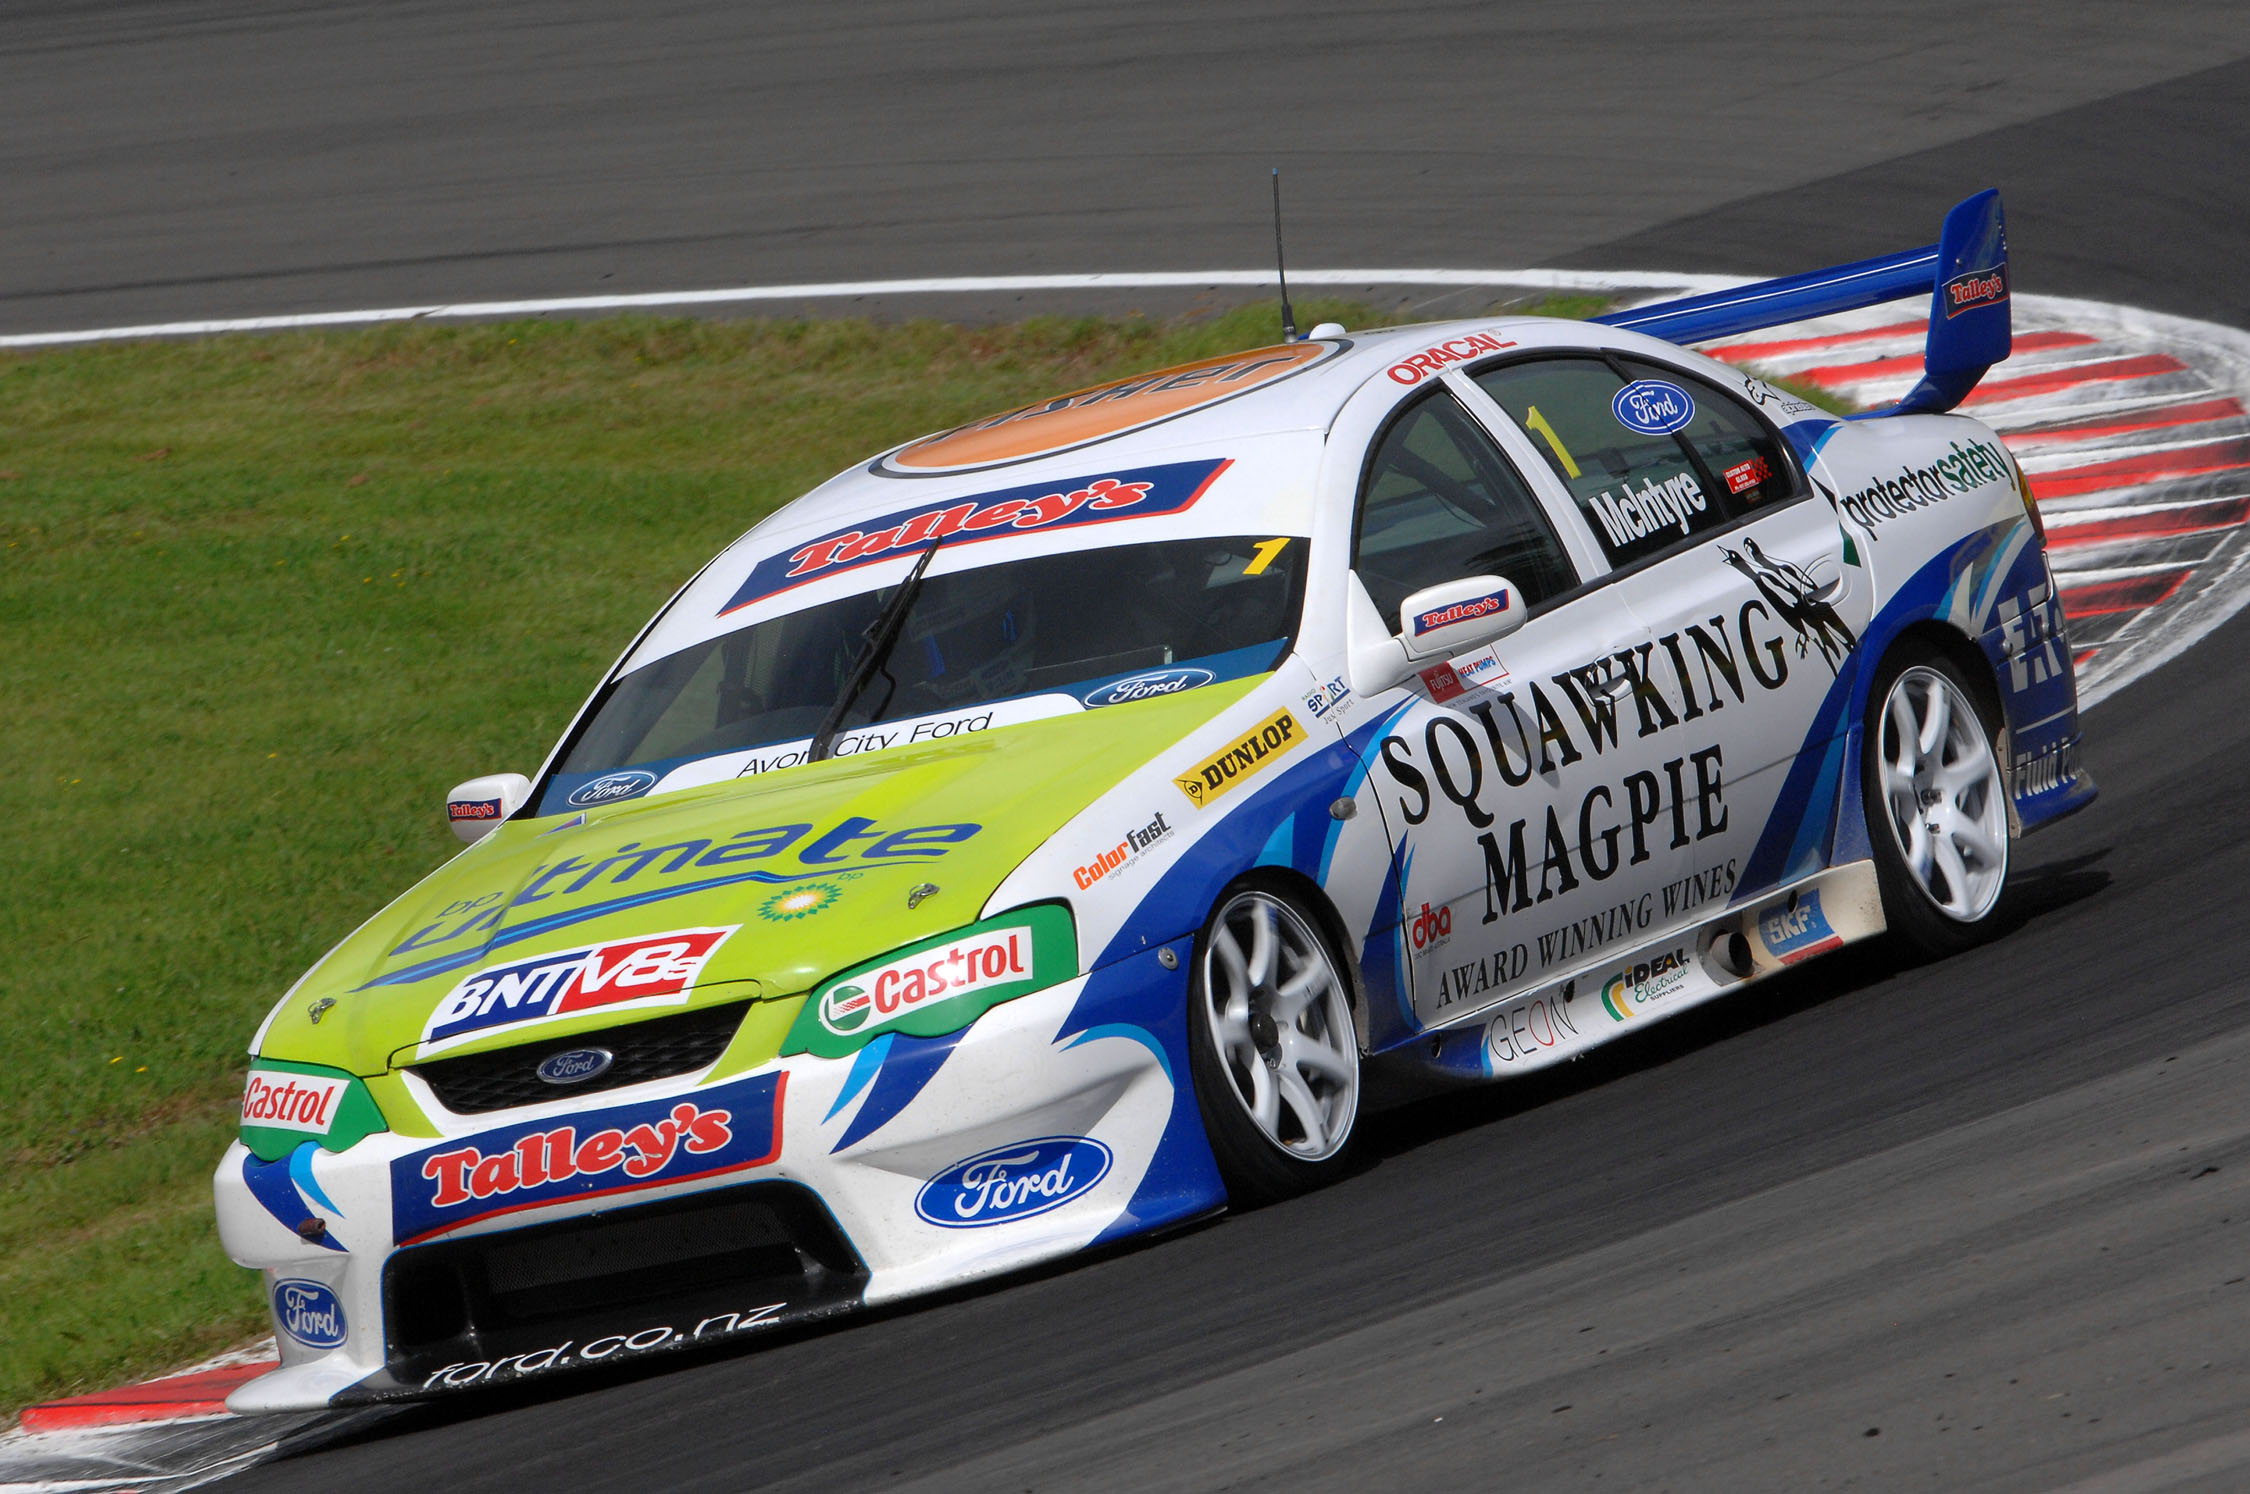 McIntyre scorches to top spot at Pukekohe